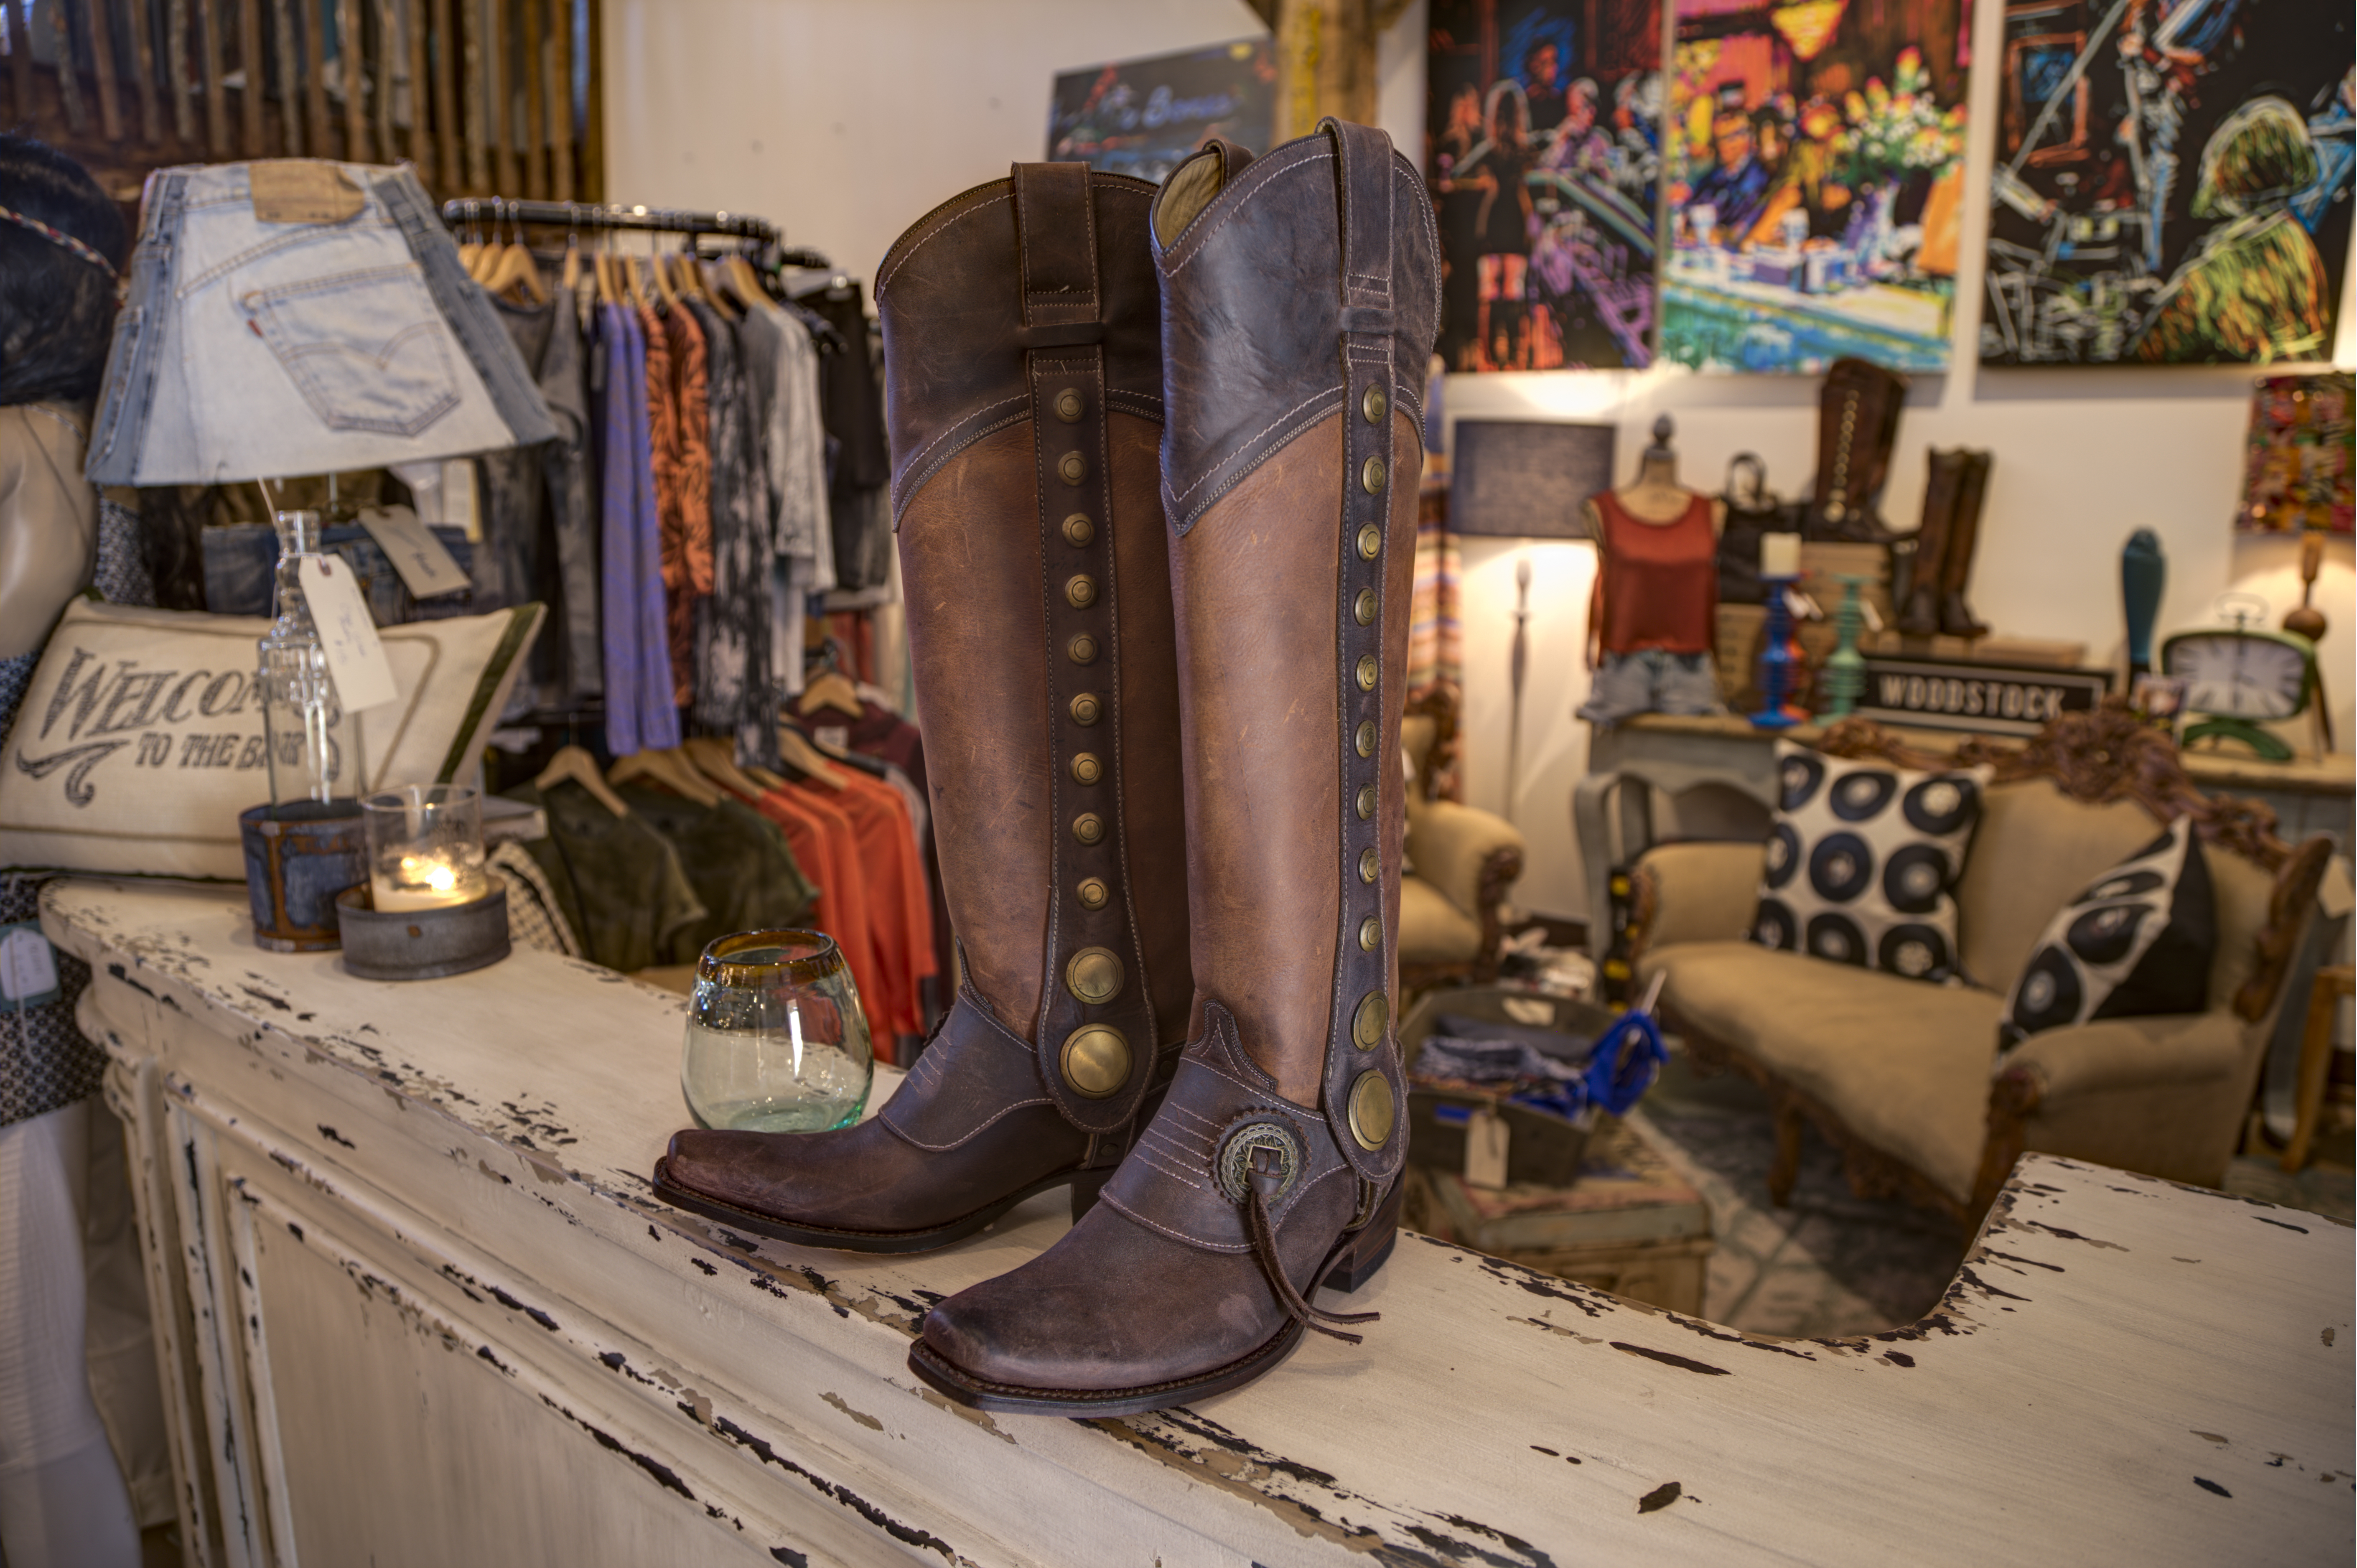 Bleu Jean Company featured Boots